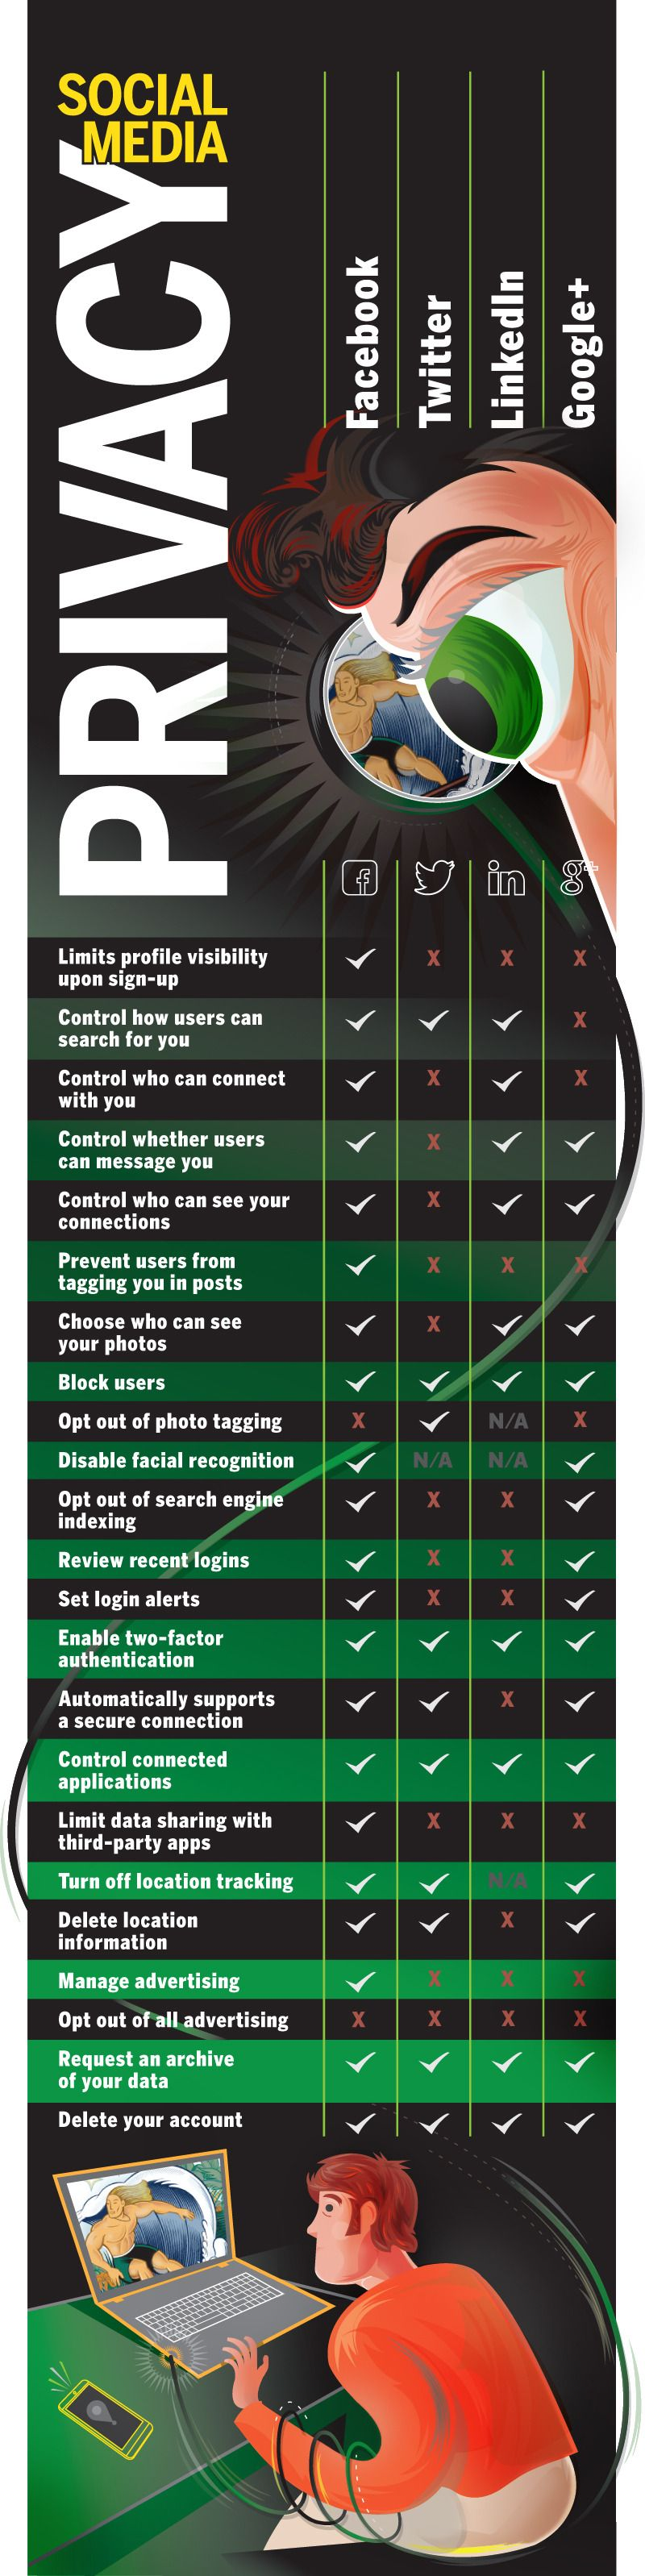 Social Media Privacy #infographic